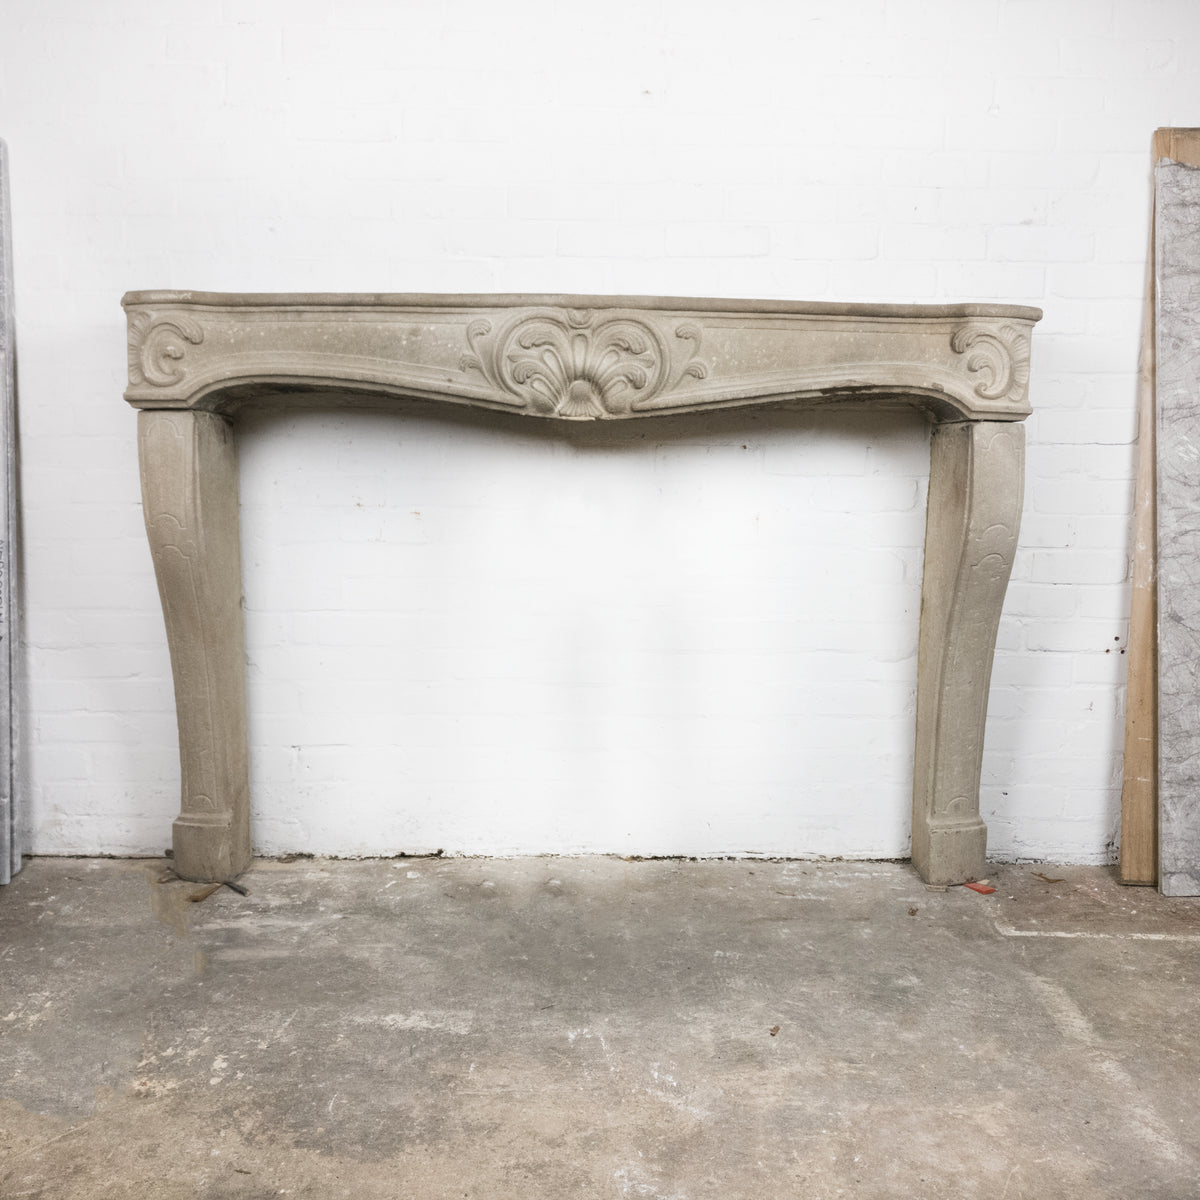 Spectacular Antique 19th Century Stone Fireplace Surround Louis XV | The Architectural Forum